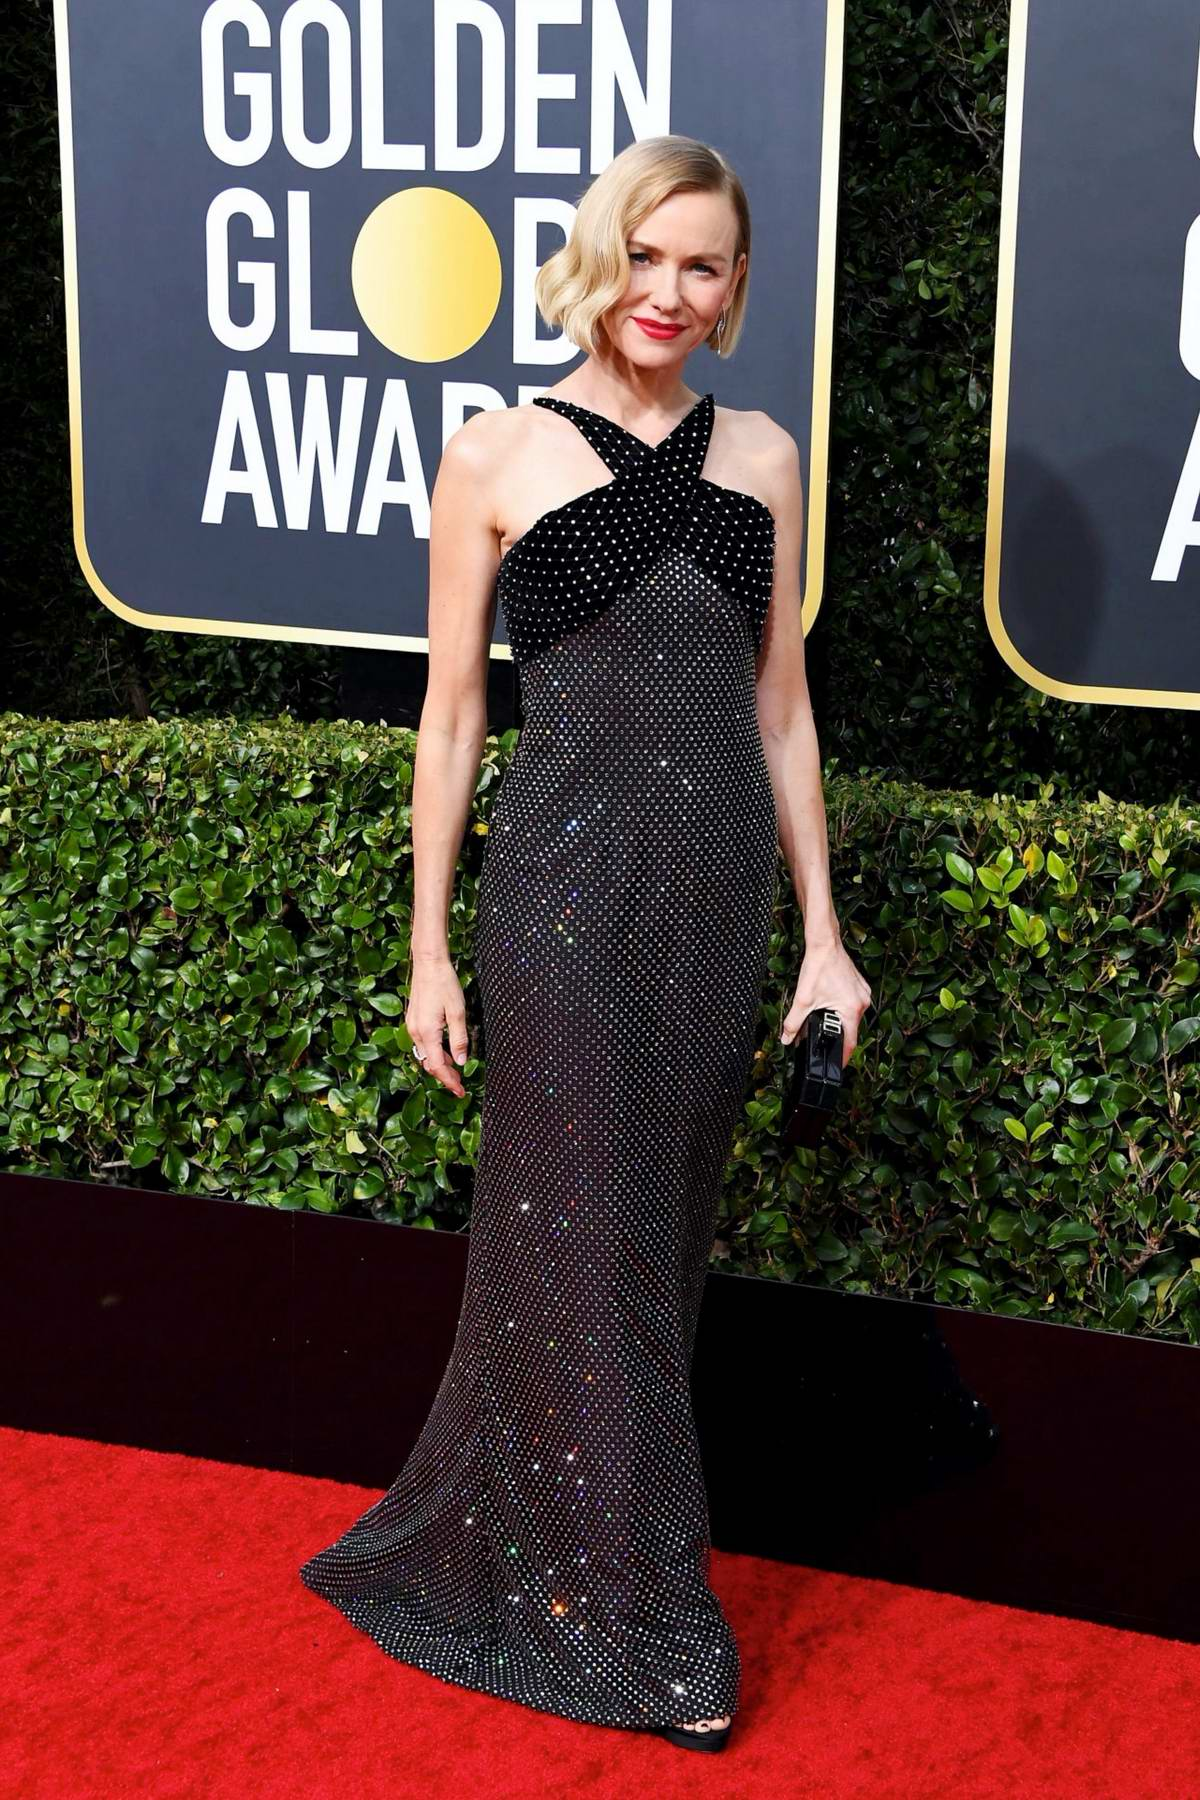 Naomi Watts attends the 77th Annual Golden Globe Awards at The Beverly Hilton Hotel in Beverly Hills, California